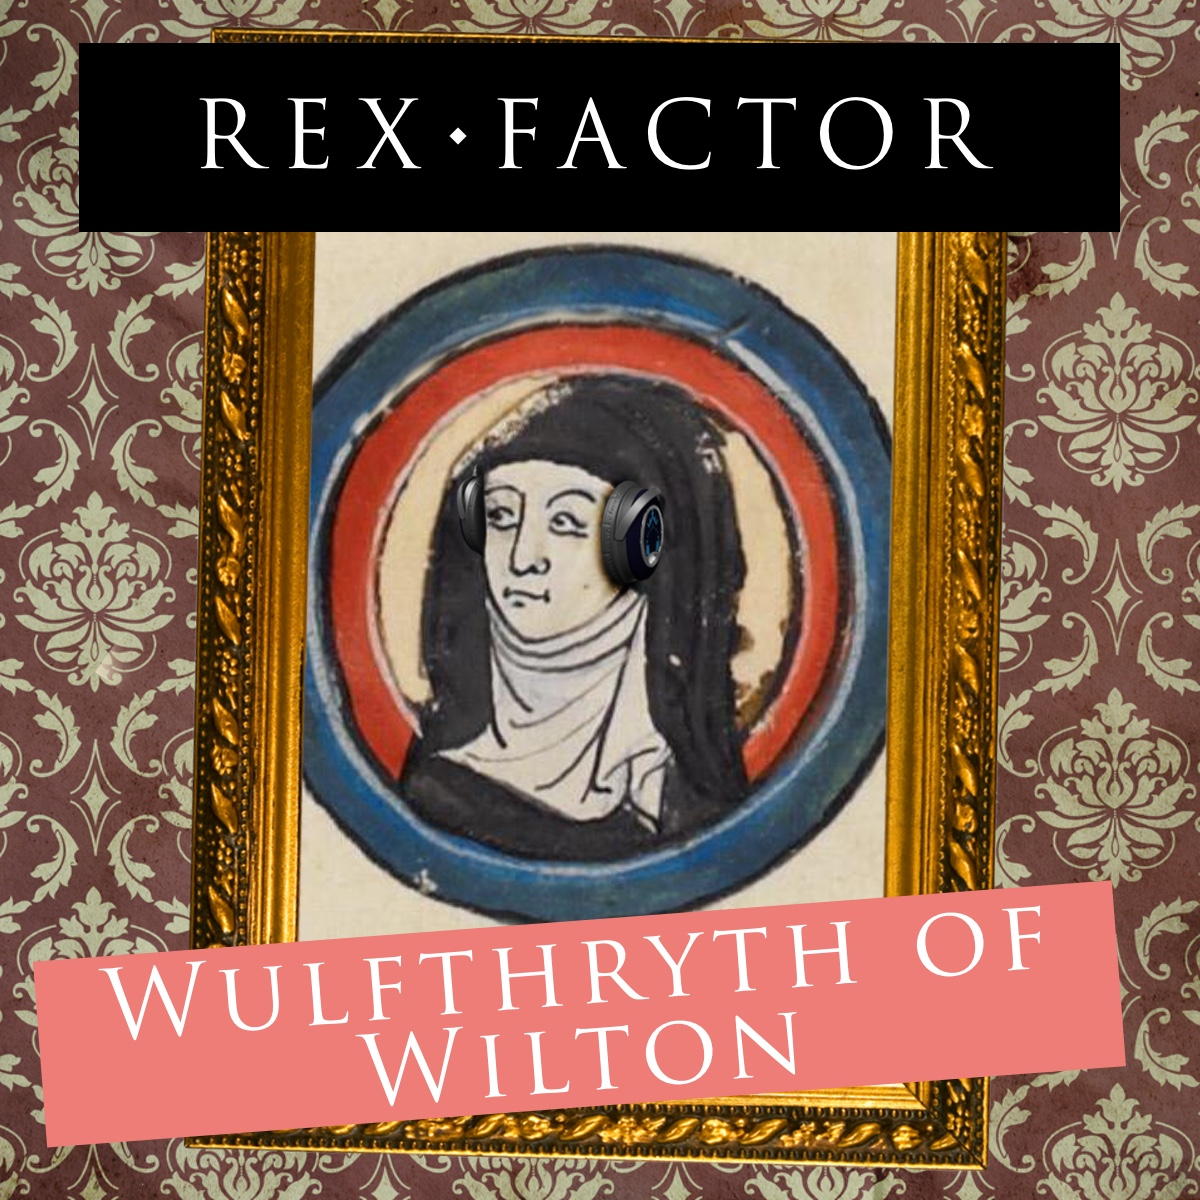 S3.09 Wulfthryth of Wilton